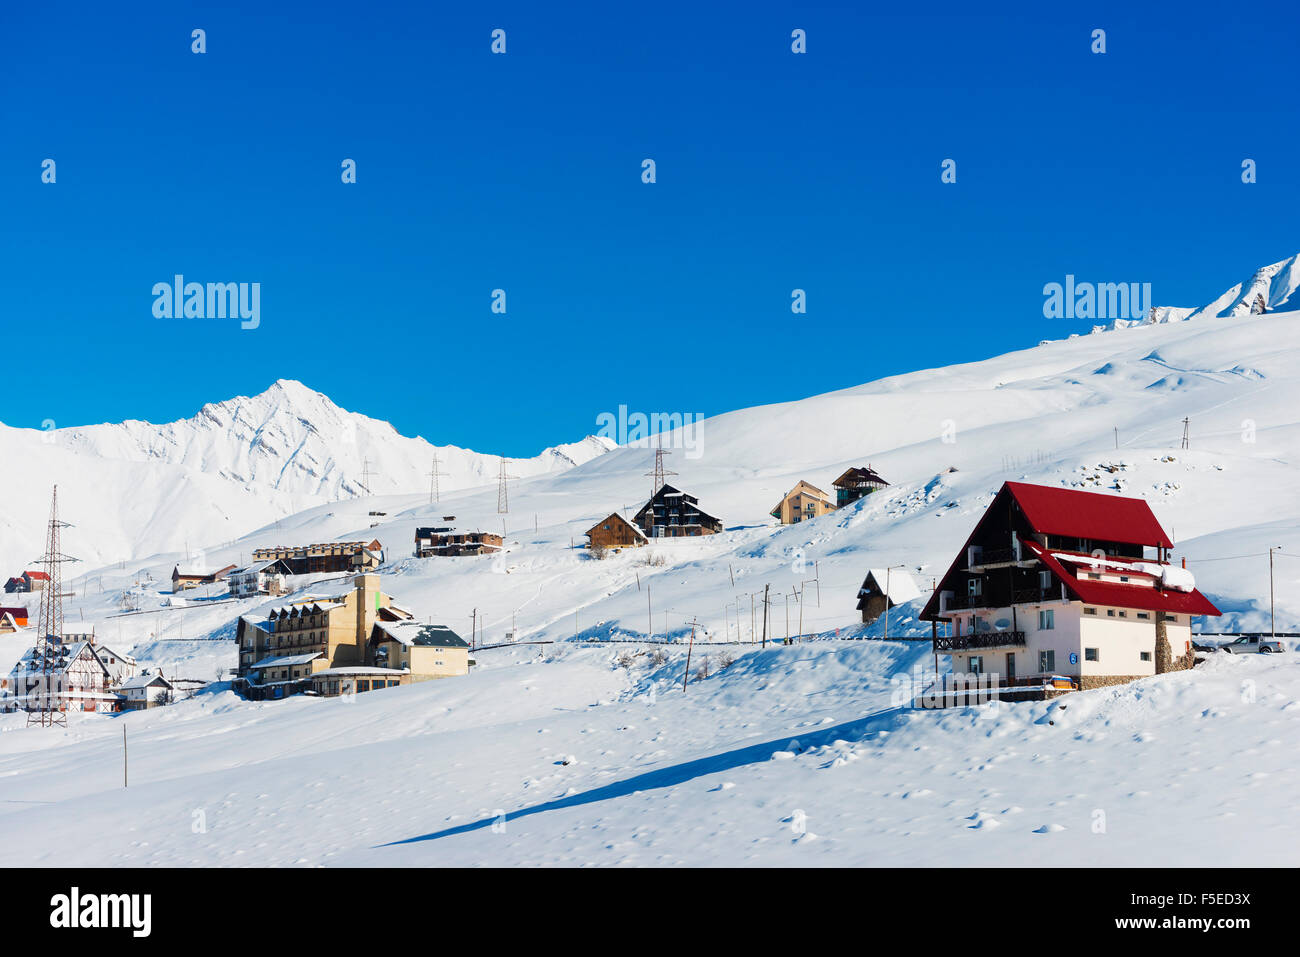 Gudauri ski resort, Georgia, Caucasus region, Central Asia, Asia - Stock Image